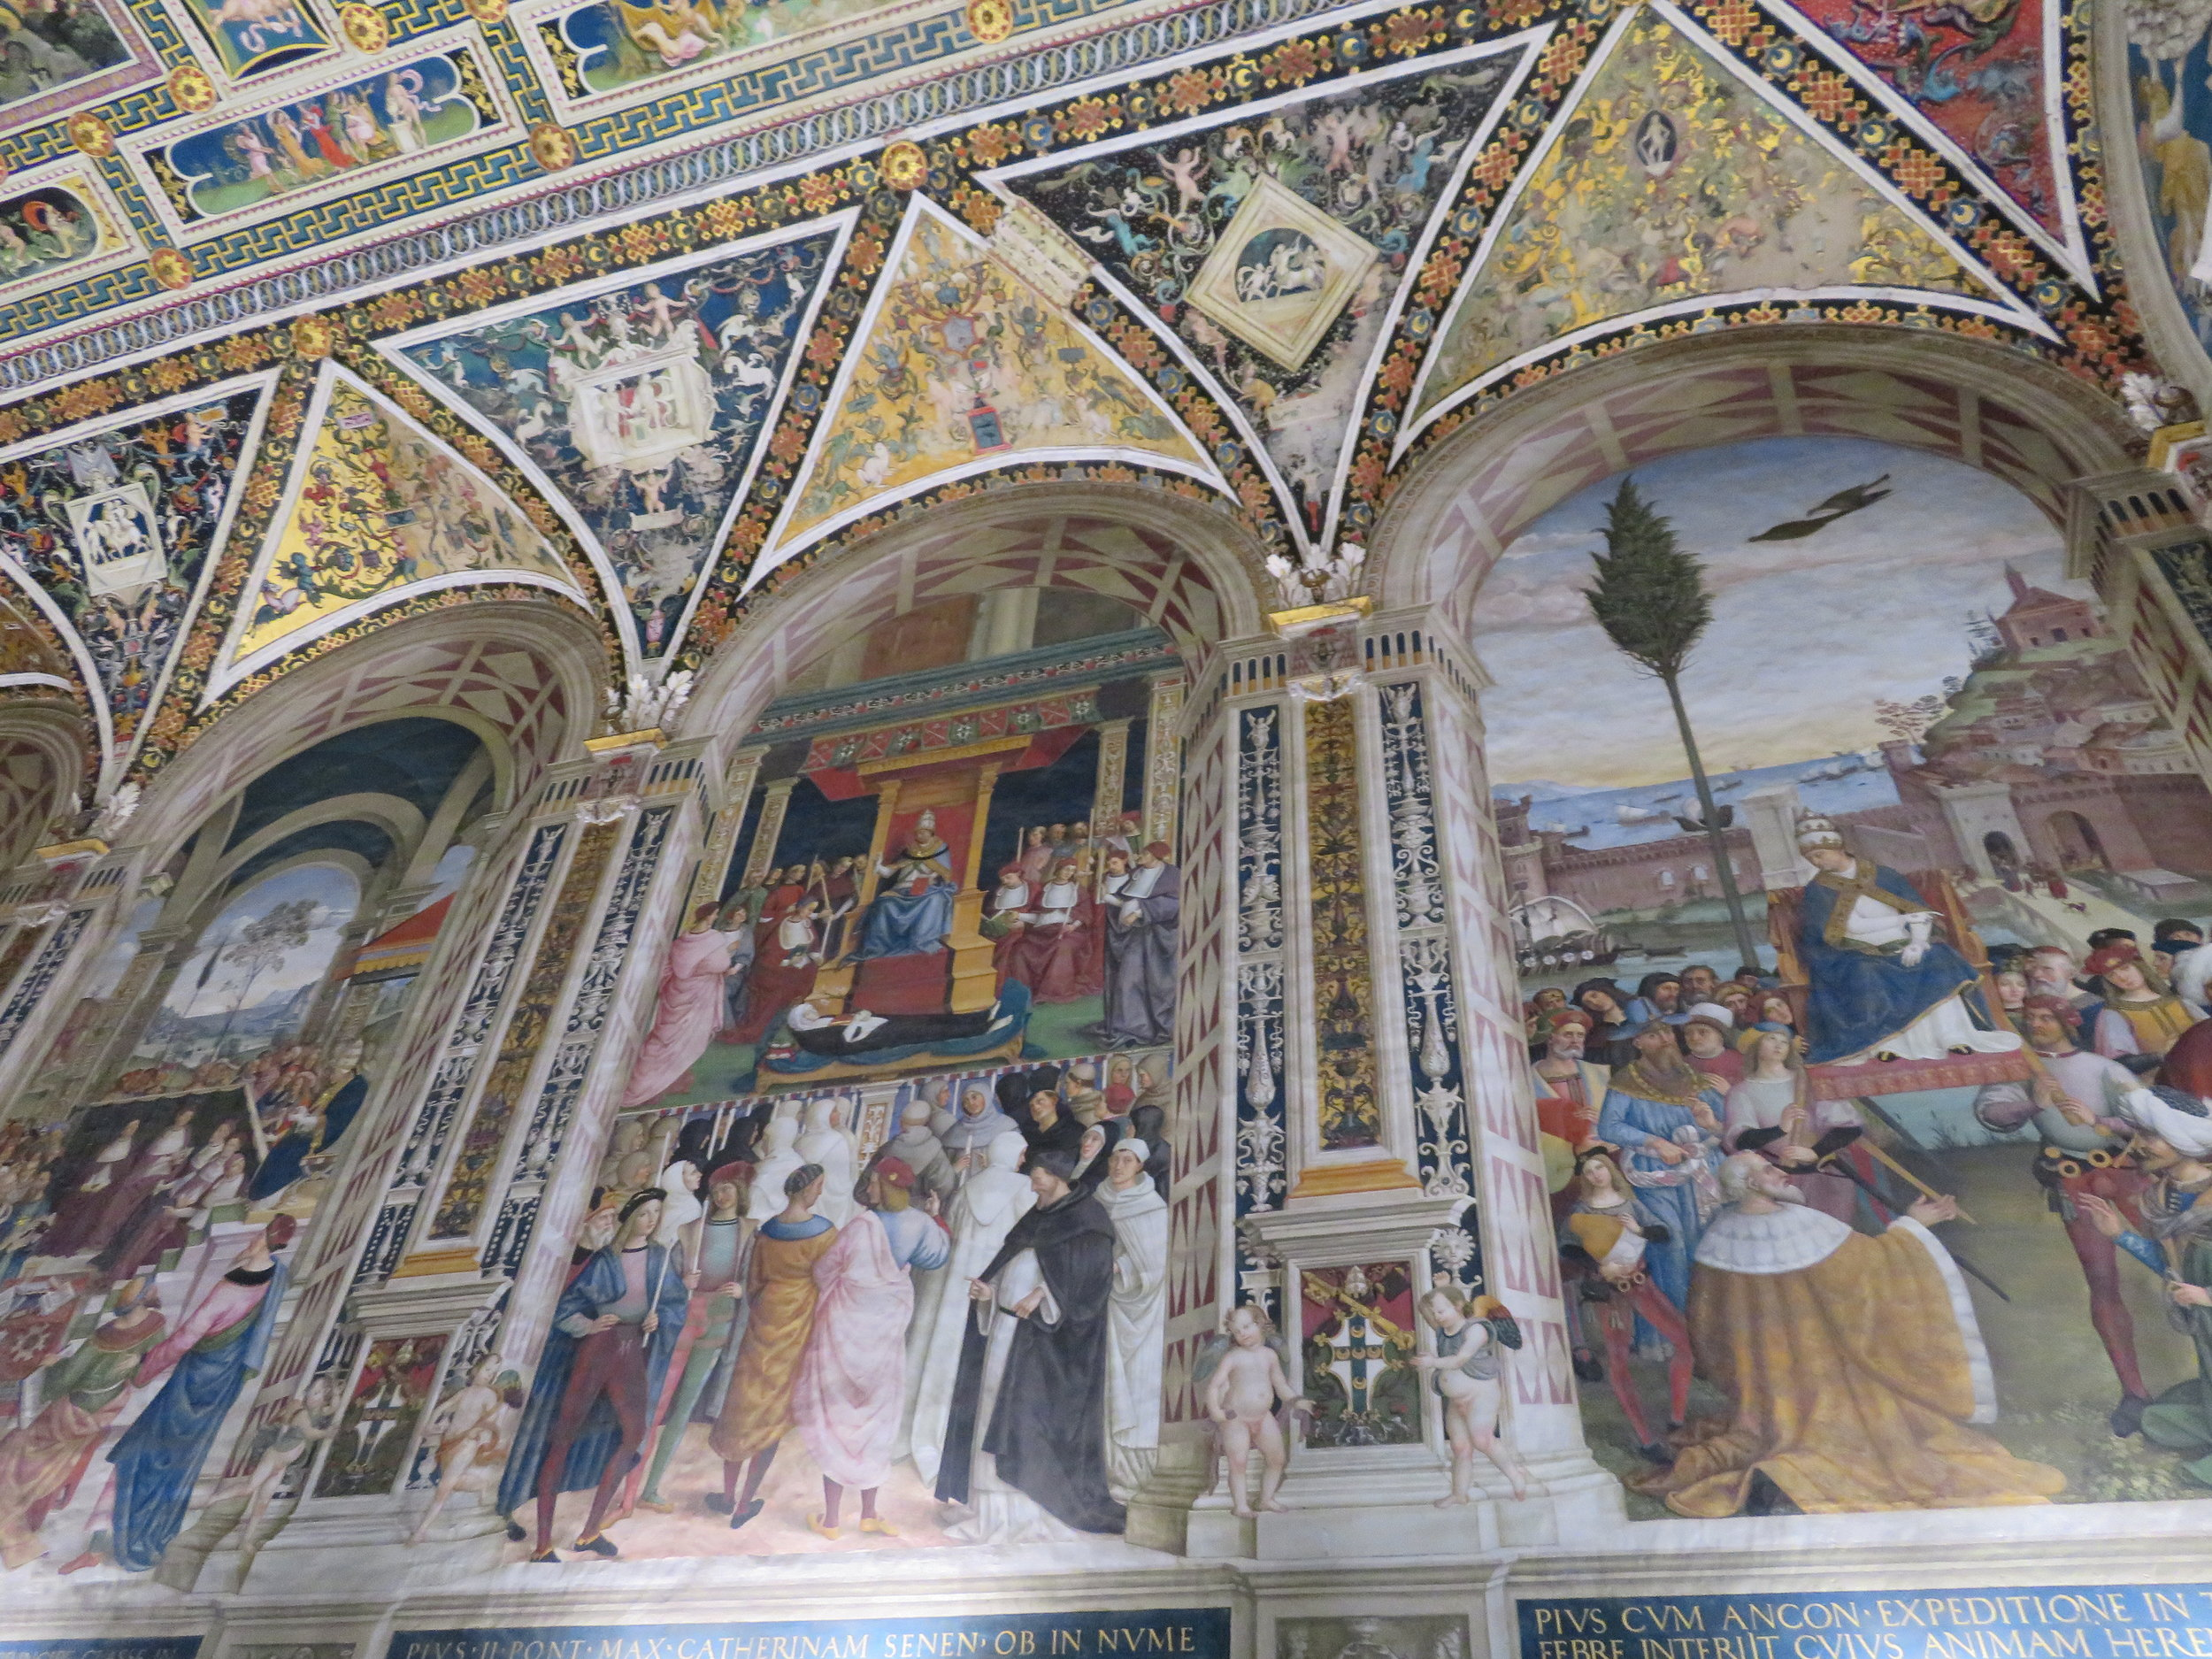 the frescoes on the ceiling and walls by Pinturicchio and his workshop stole the show.